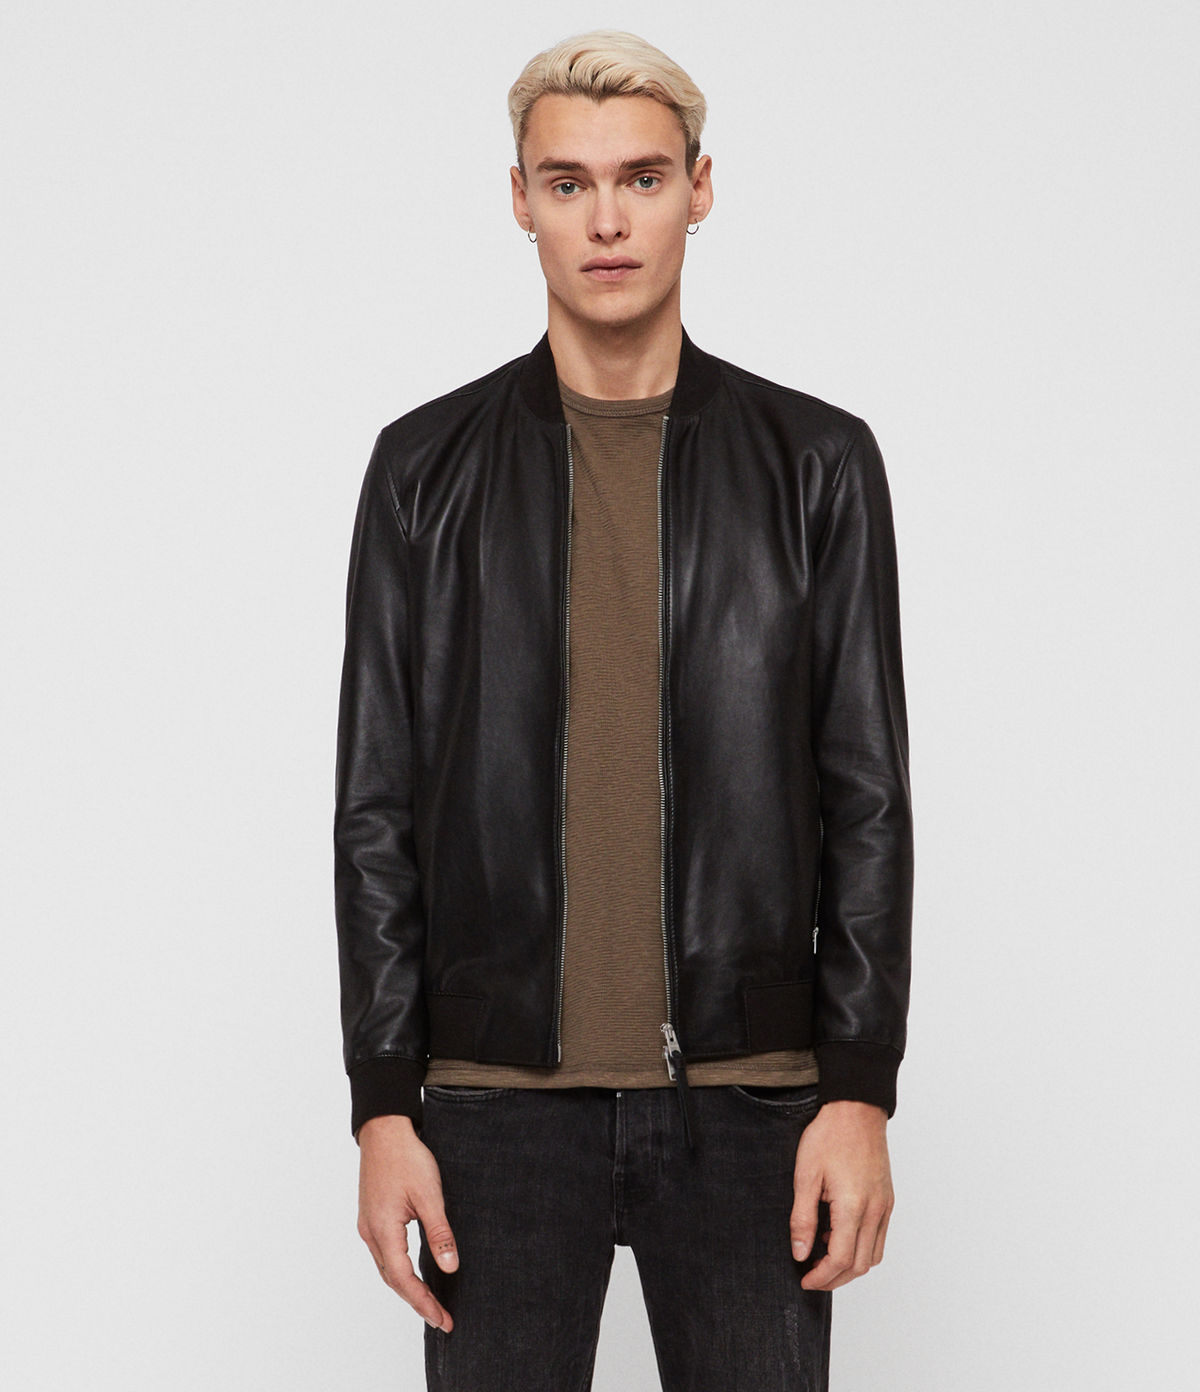 mower-leather-bomber-jacket